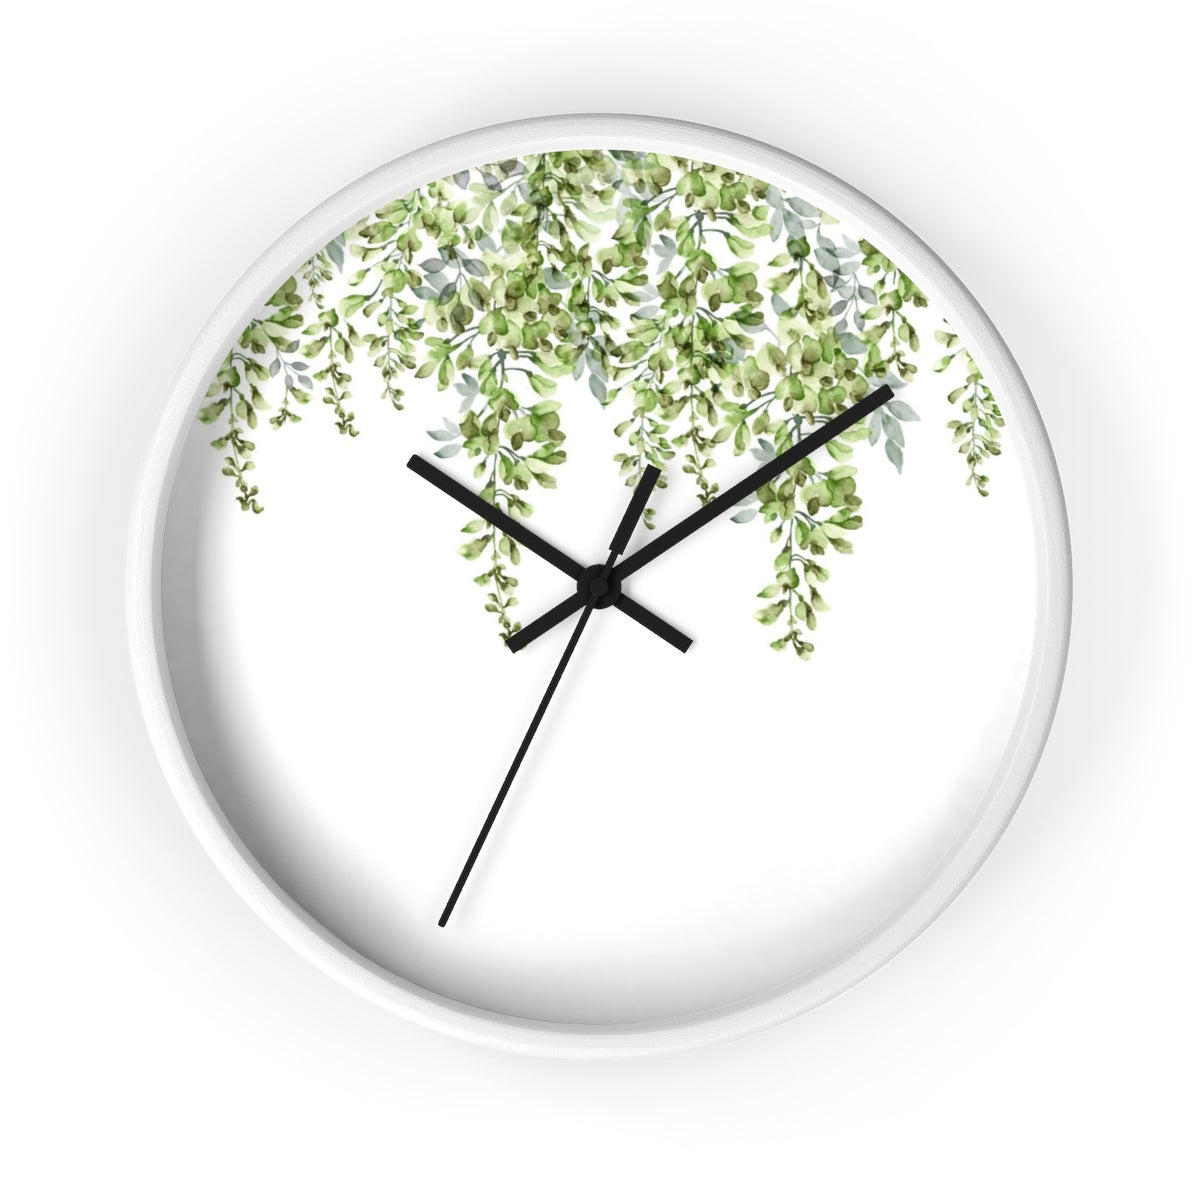 Falling Leaves Wall Clock - Liz Kapiloto Art & Design